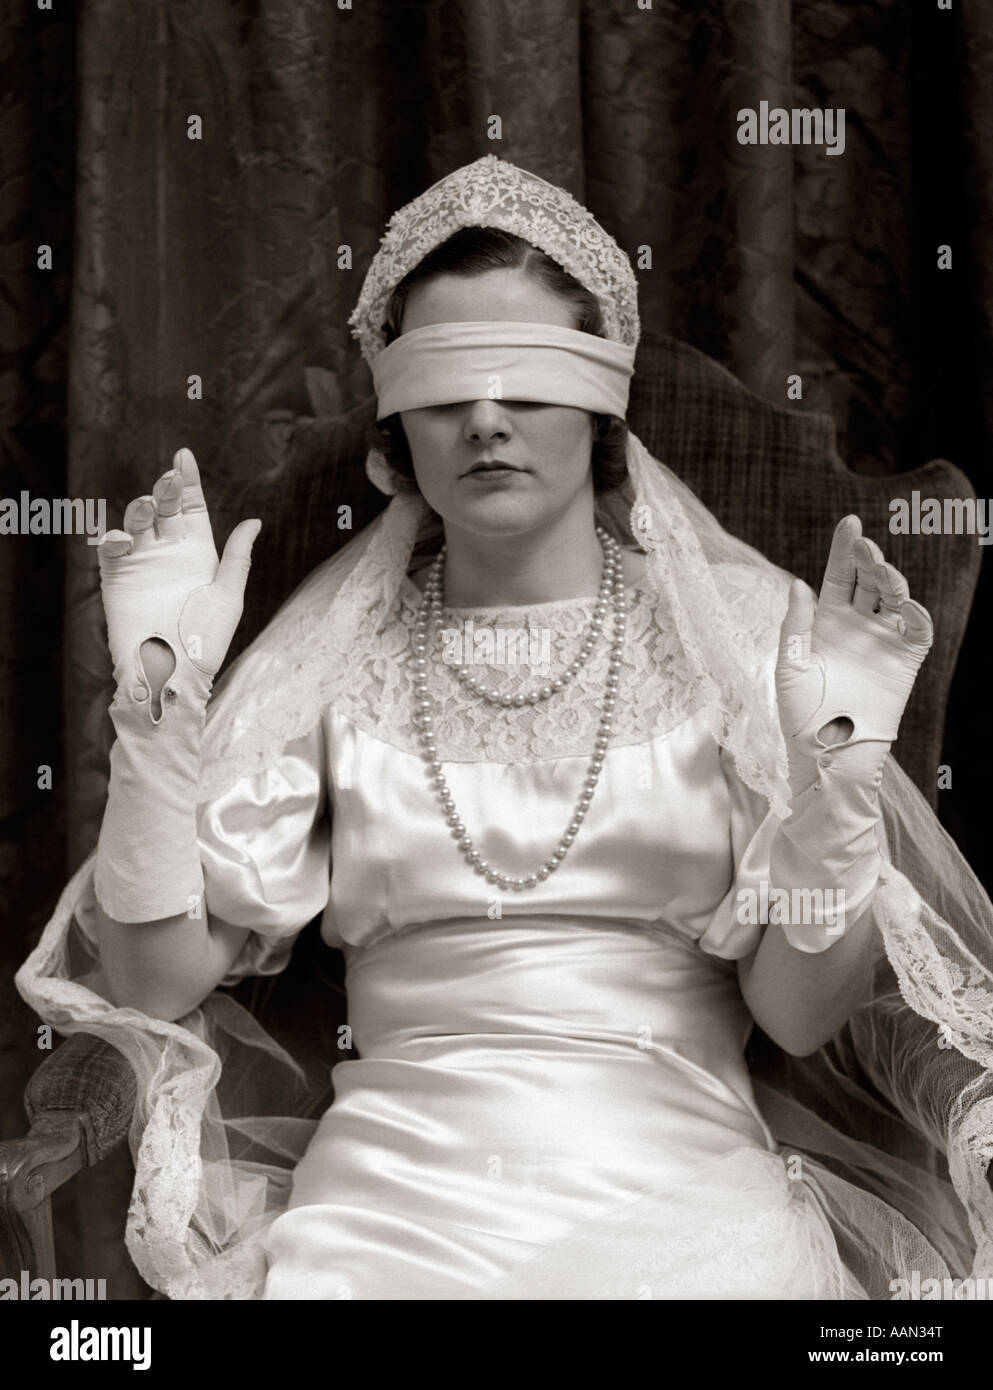 1930s BRIDE WEARING BLINDFOLD - Stock Image